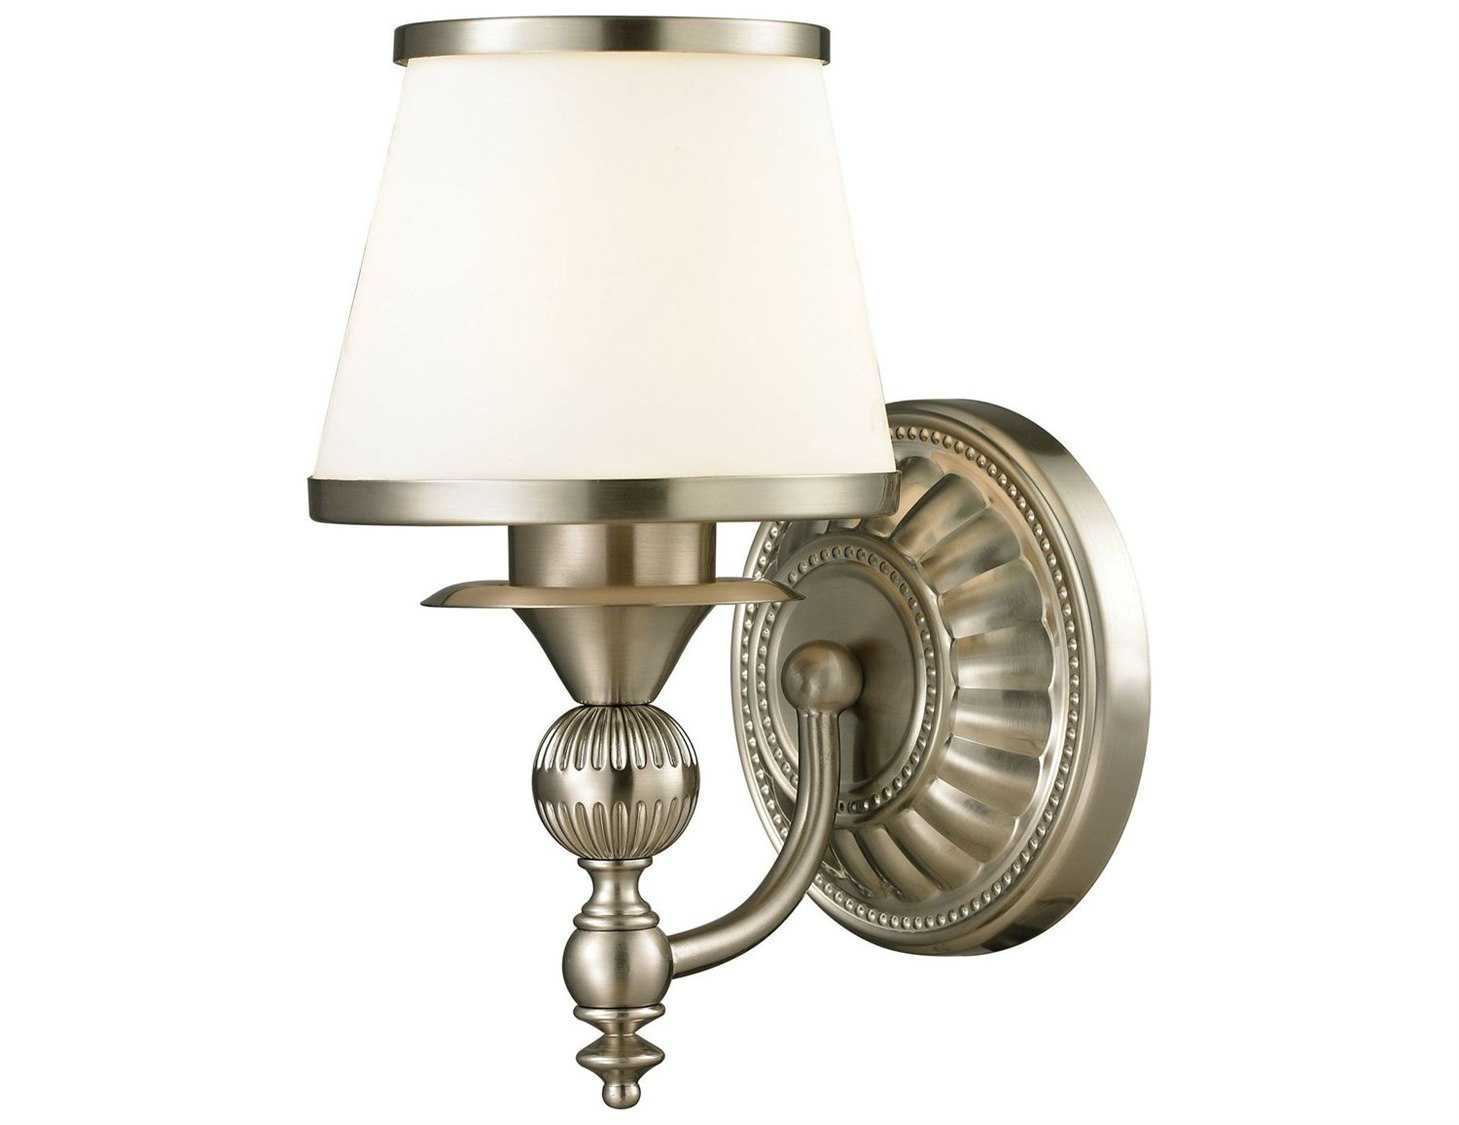 Minka Lavery Bridlewood Stone Grey With Brushed Nickel: Elk Lighting Smithfield Brushed Nickel Bath Wall Sconce